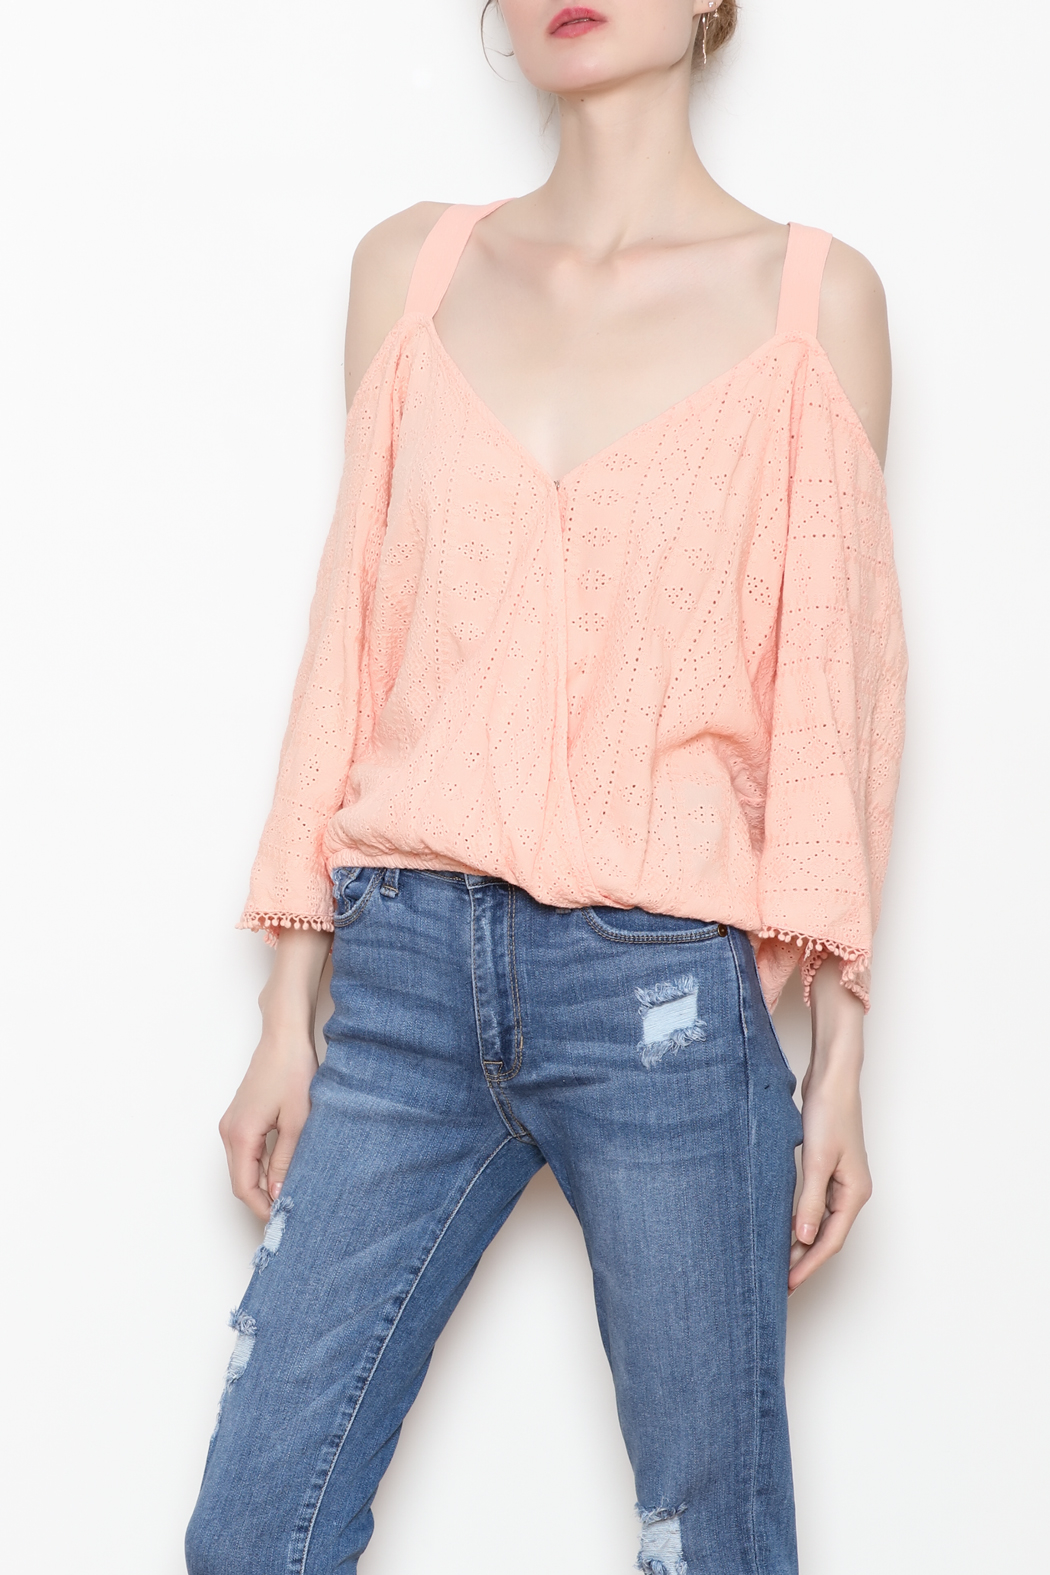 Flowers of Romance Blush Cora Top - Front Full Image